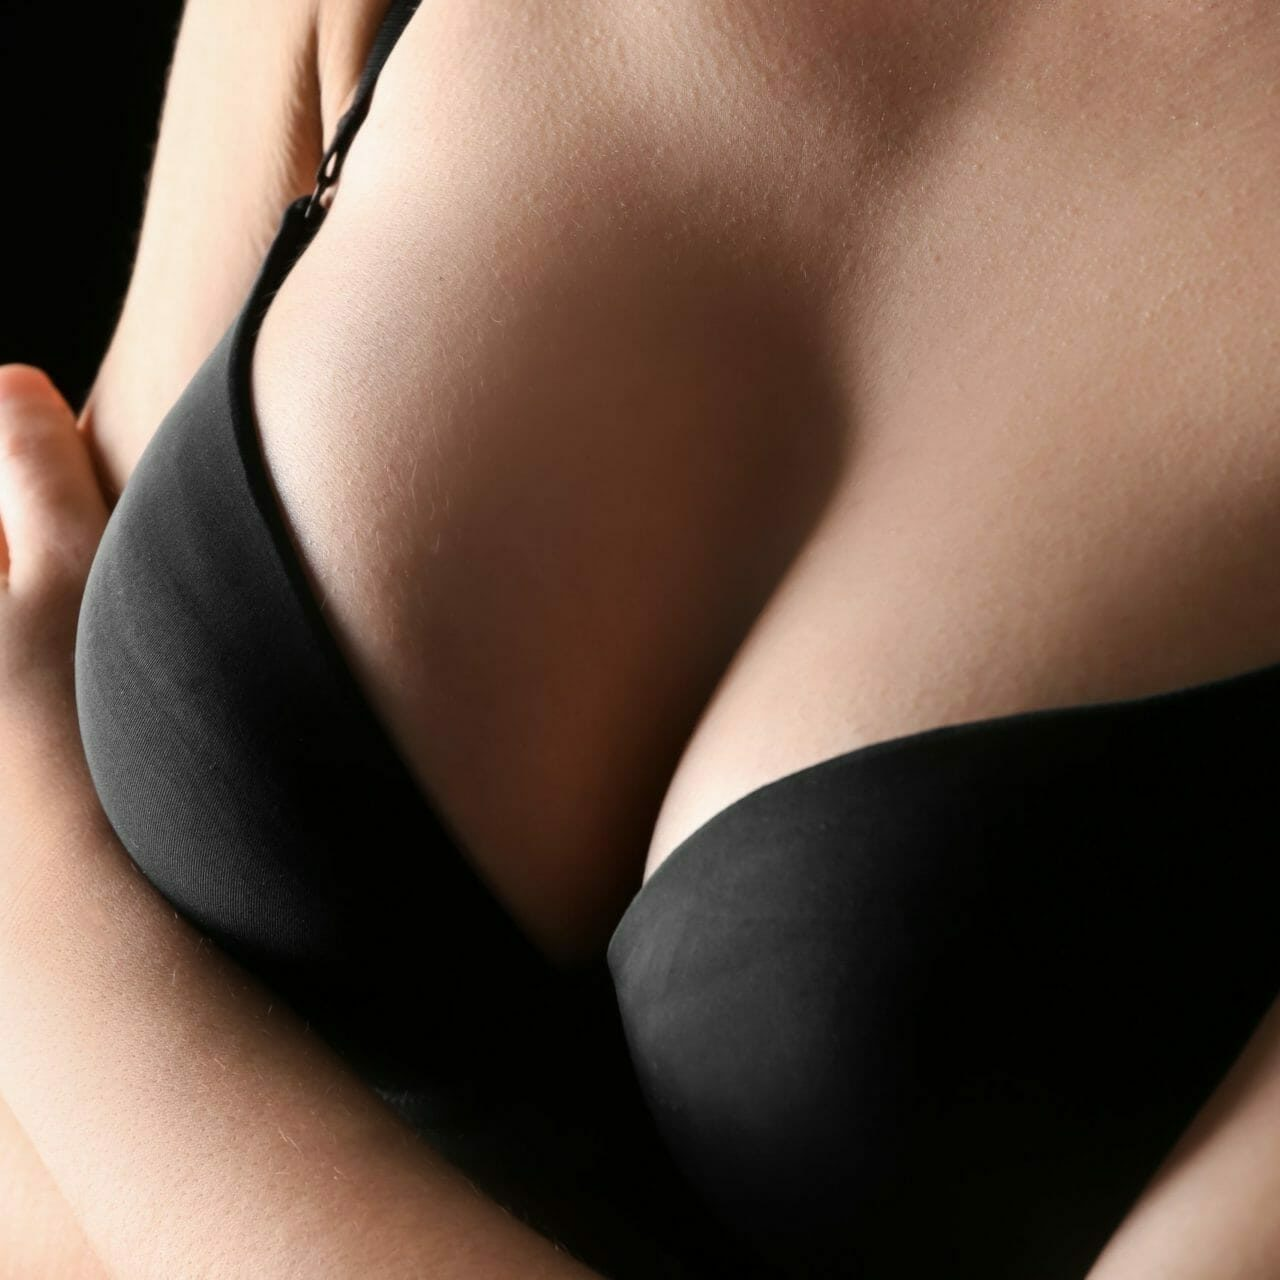 Young woman with beautiful breast on dark background, closeup